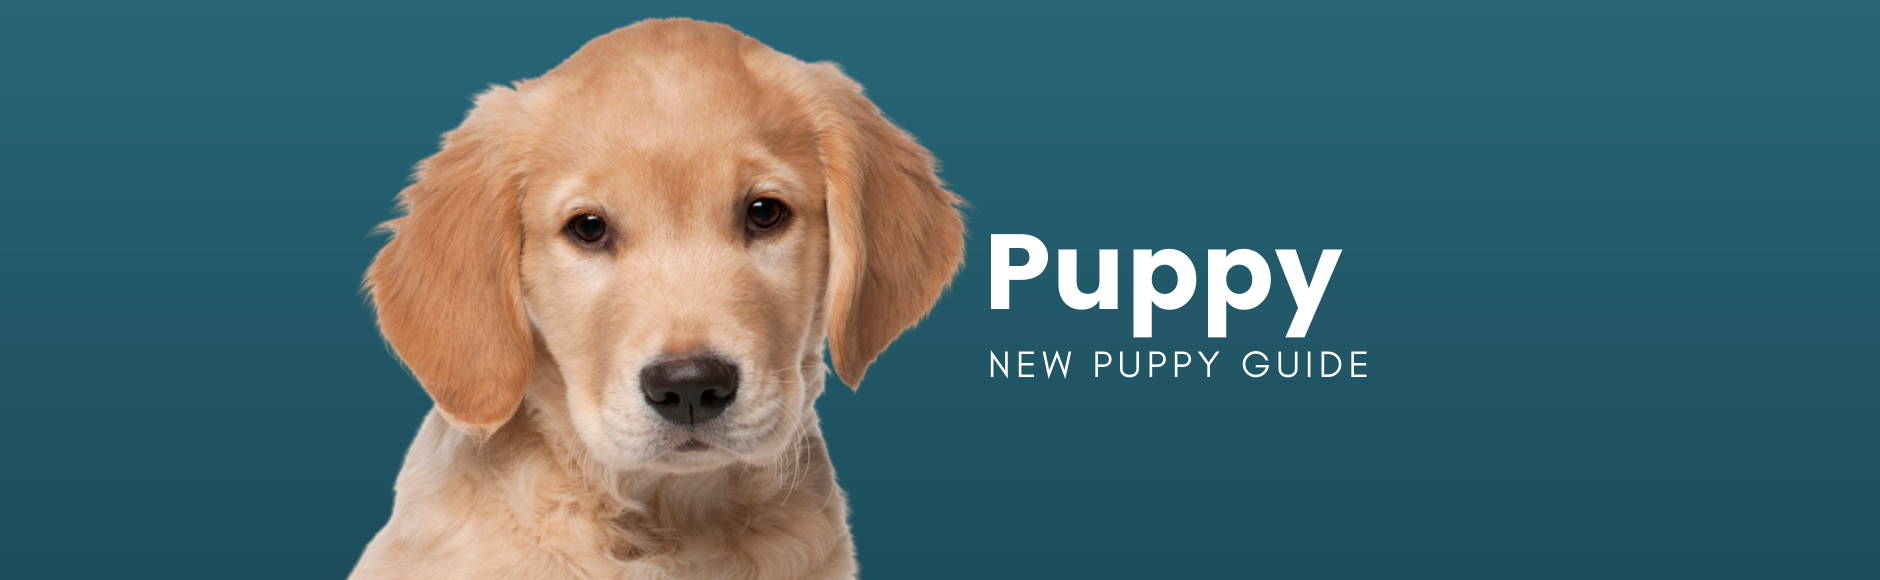 Puppy - New Puppy Guide